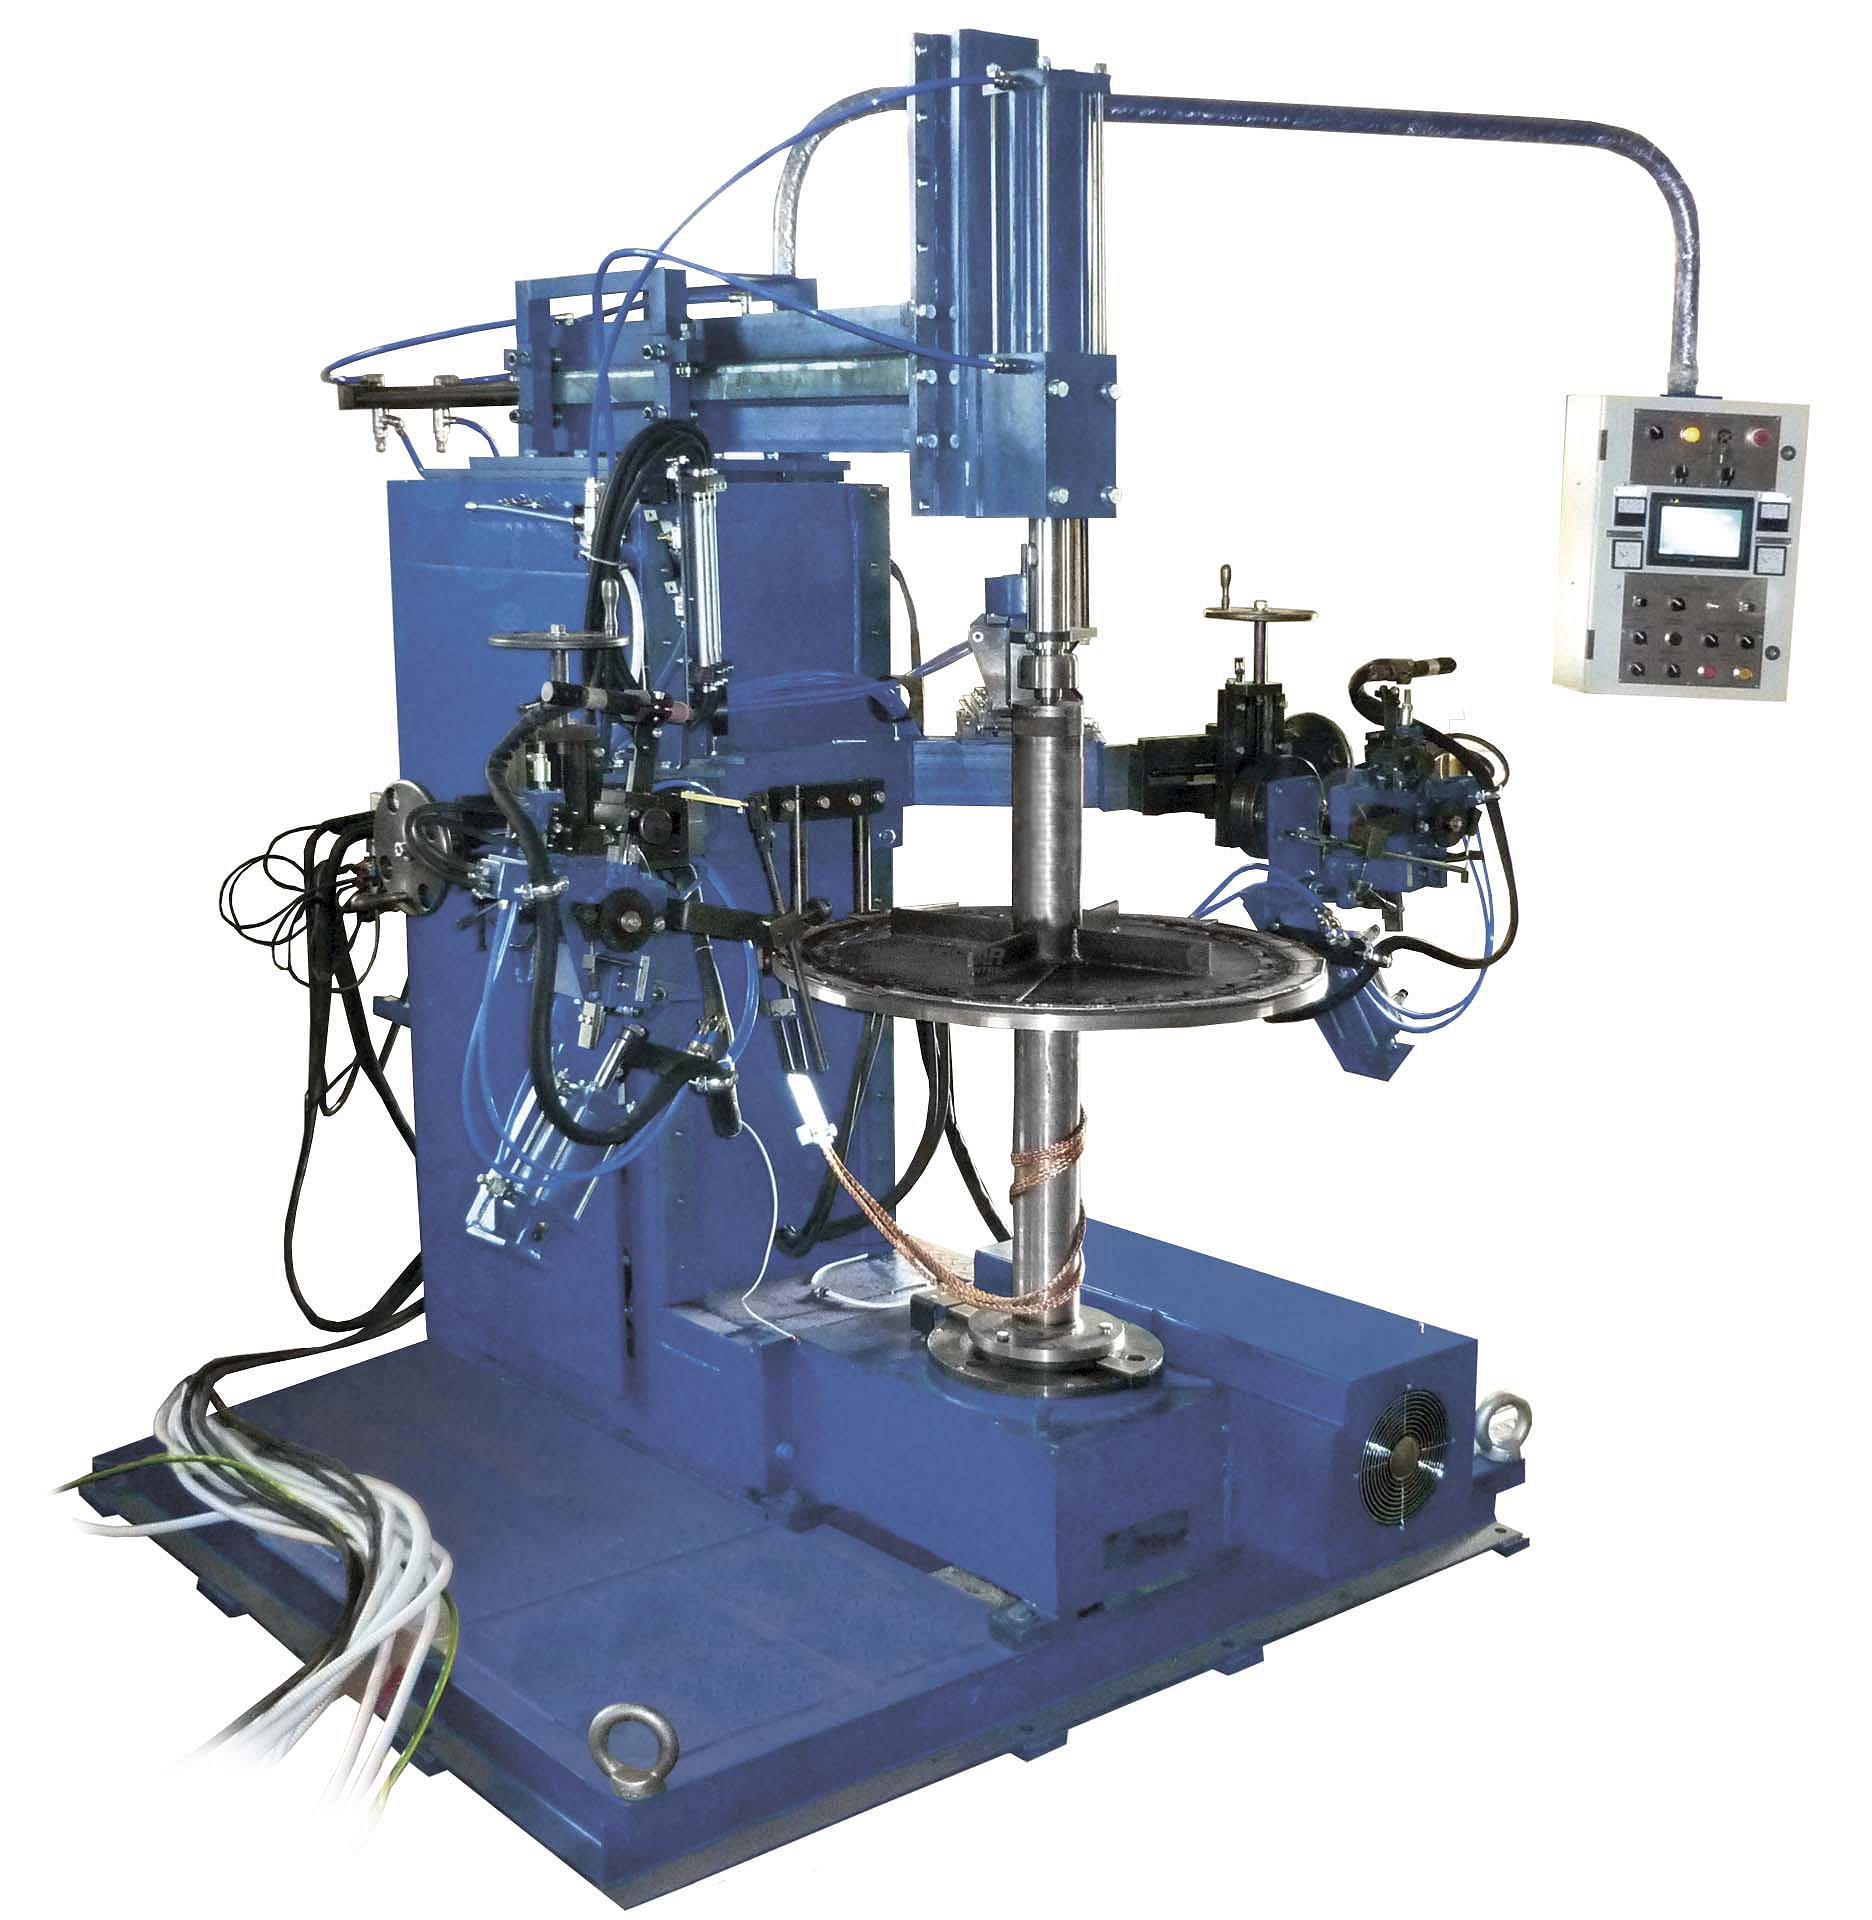 ADG-507 ARMATURE WINDINGS AND COMMUTATOR WELDING MACHINE